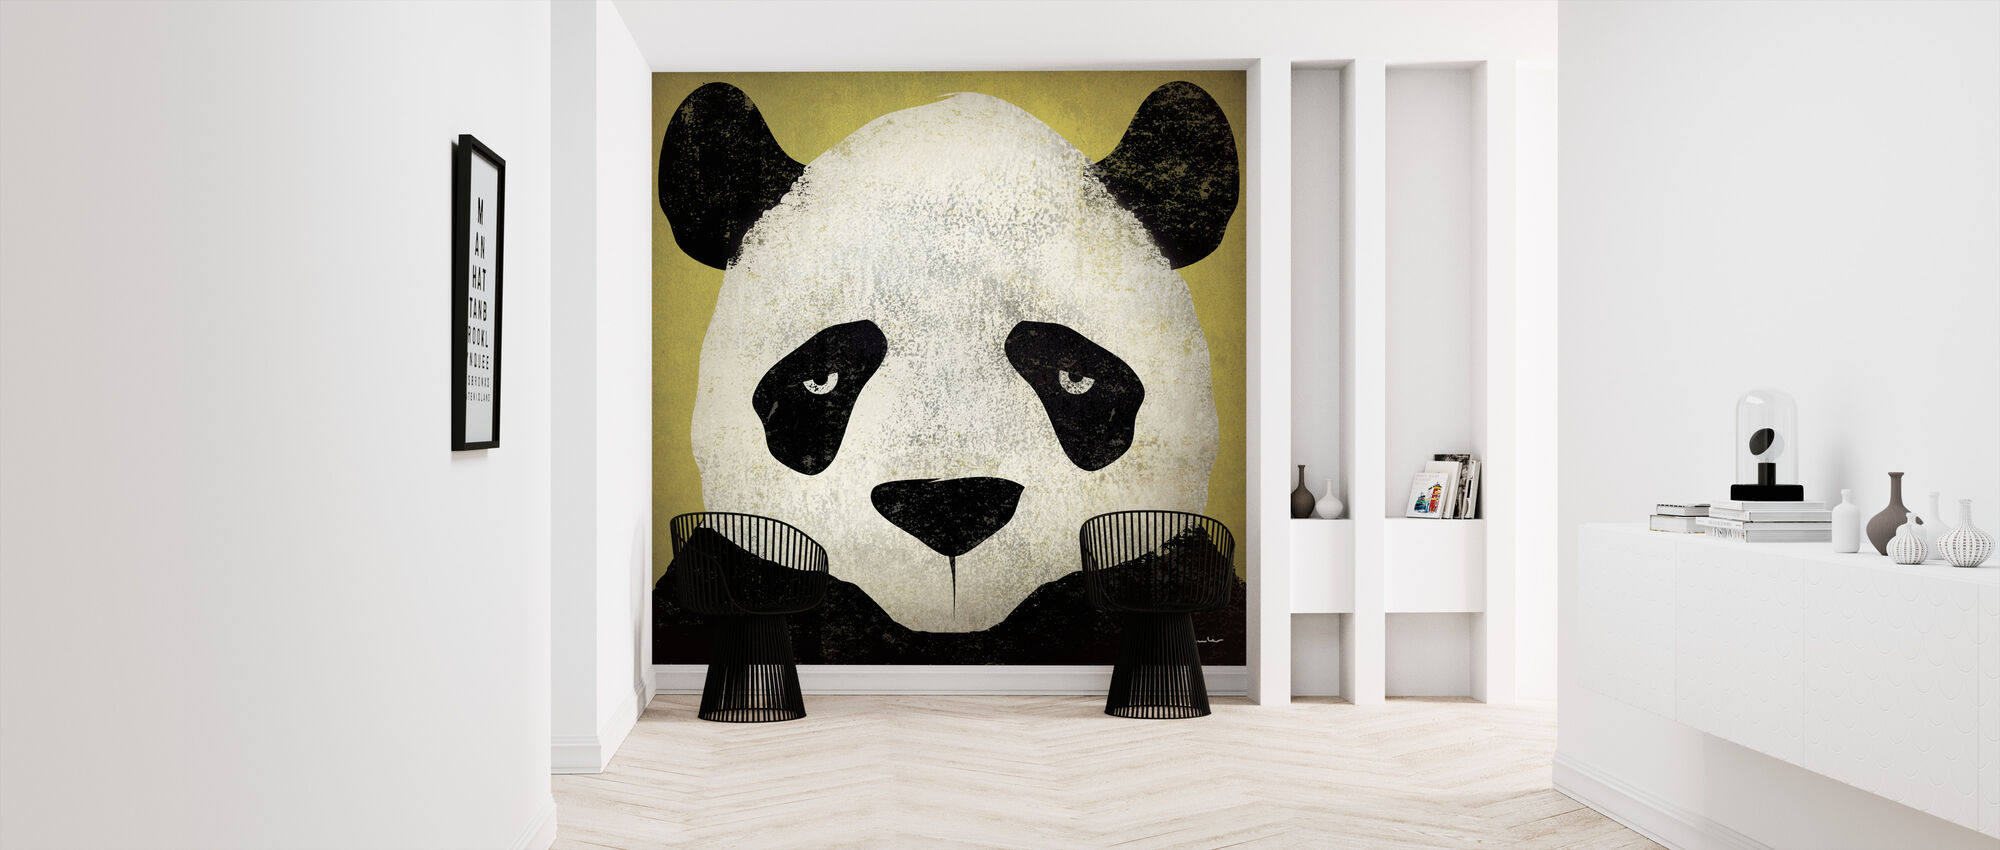 Ryan Fowler - Panda - Wallpaper - Hallway